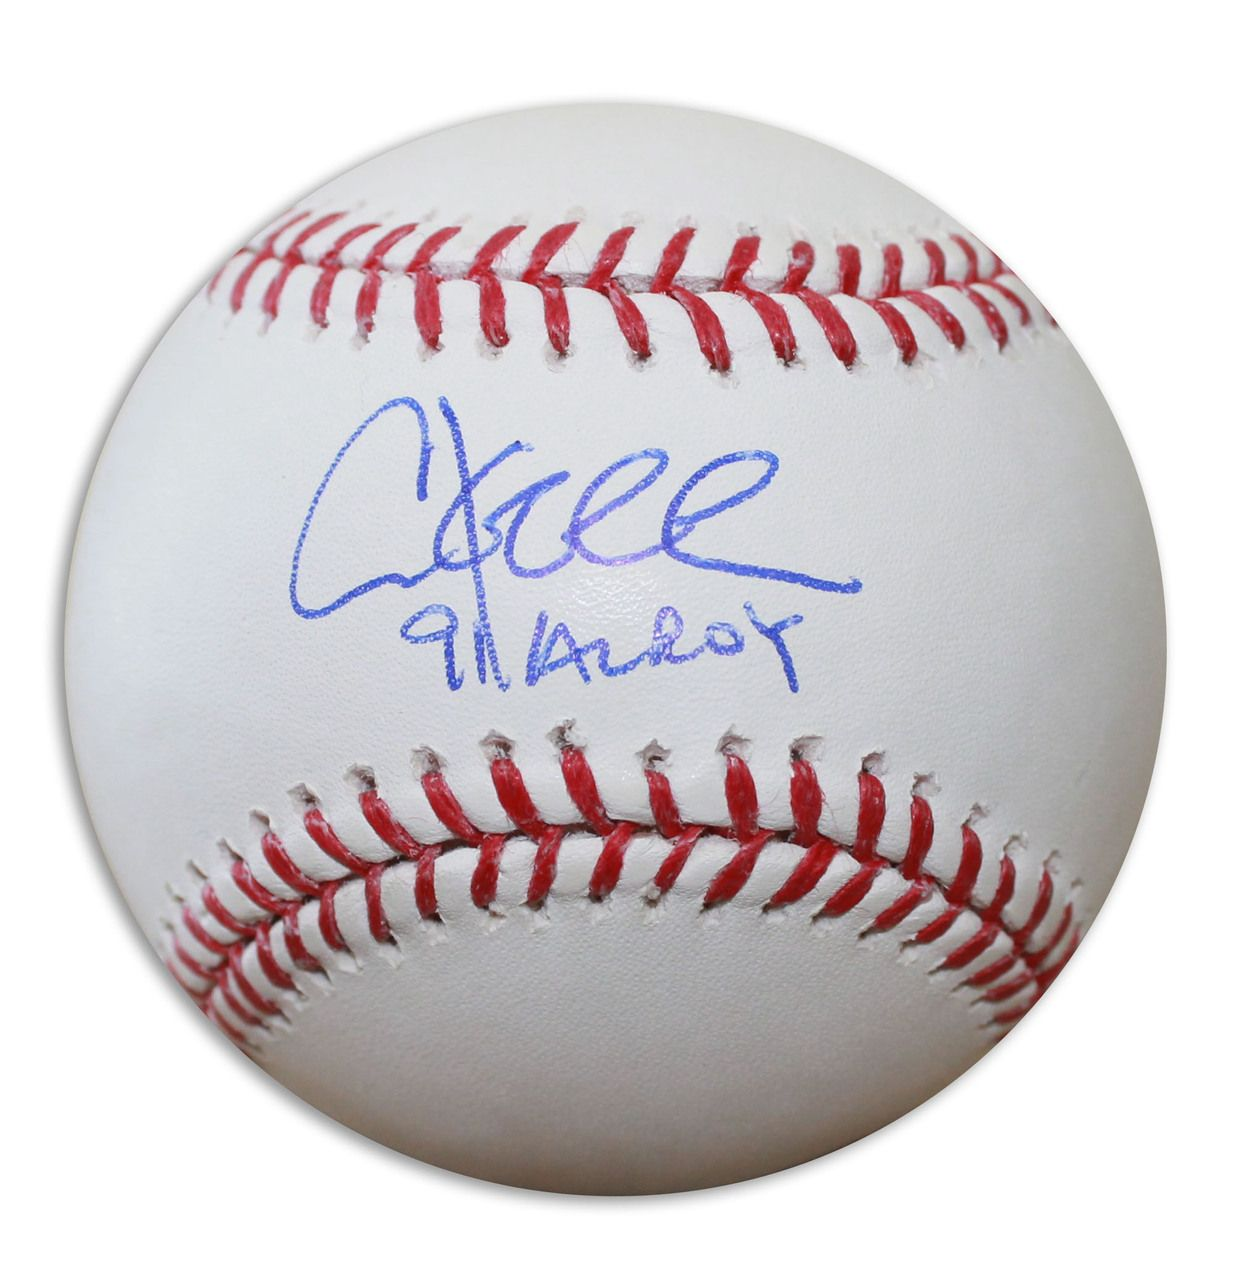 Chuck Knoblauch Autographed Official Mlb Baseball Inscribed 91 Al Roy Mlb Baseball Baseball Mlb